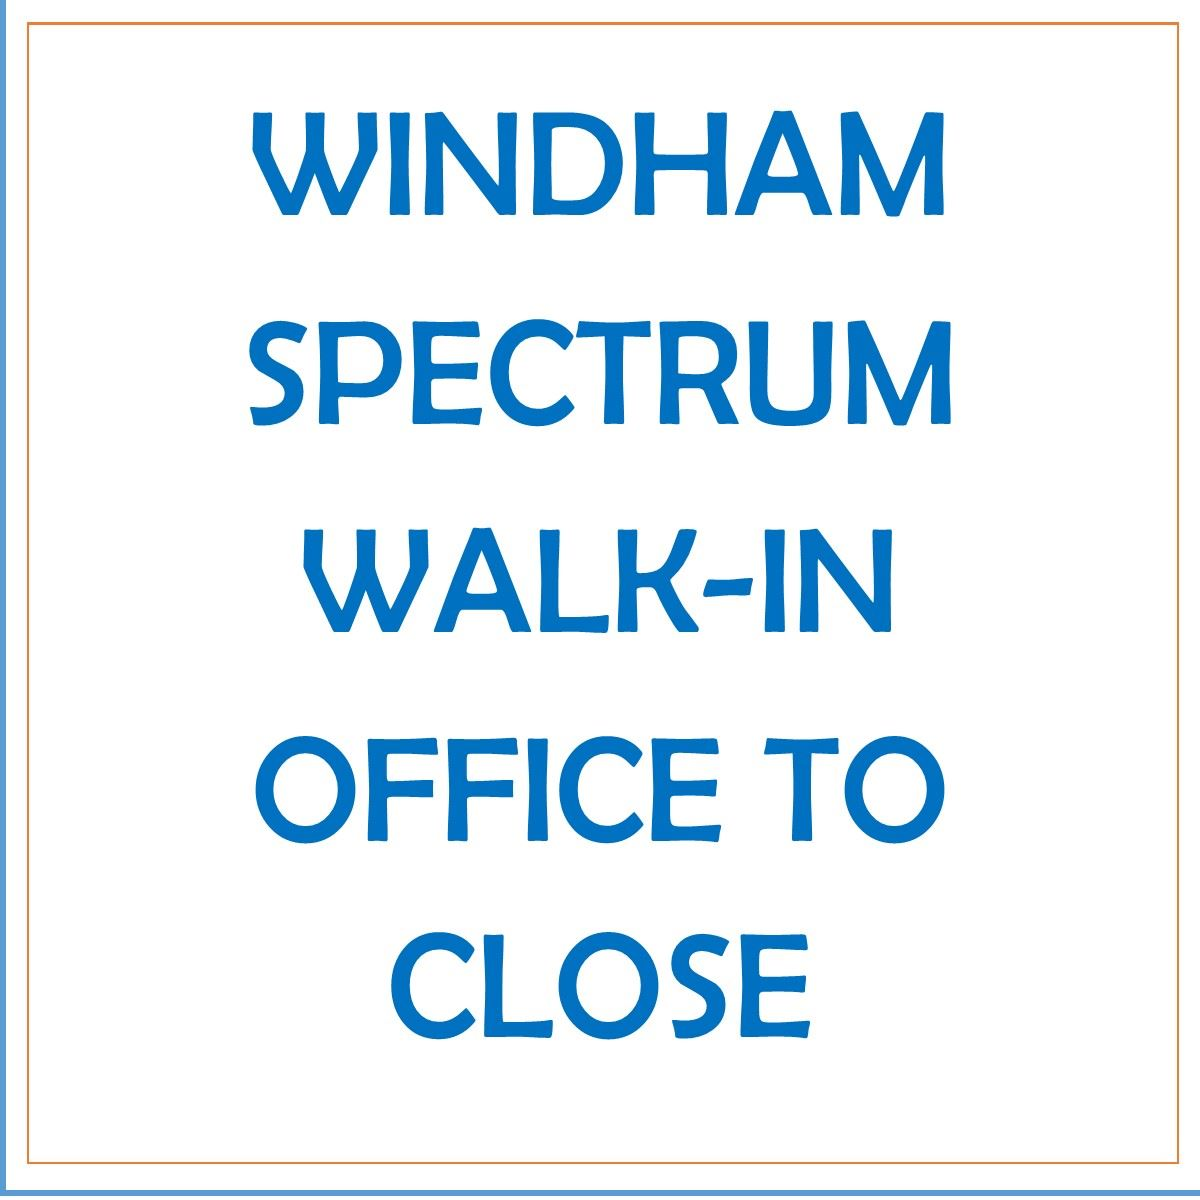 SPECTRUM OFFICE CLOSING IN WINDHAM